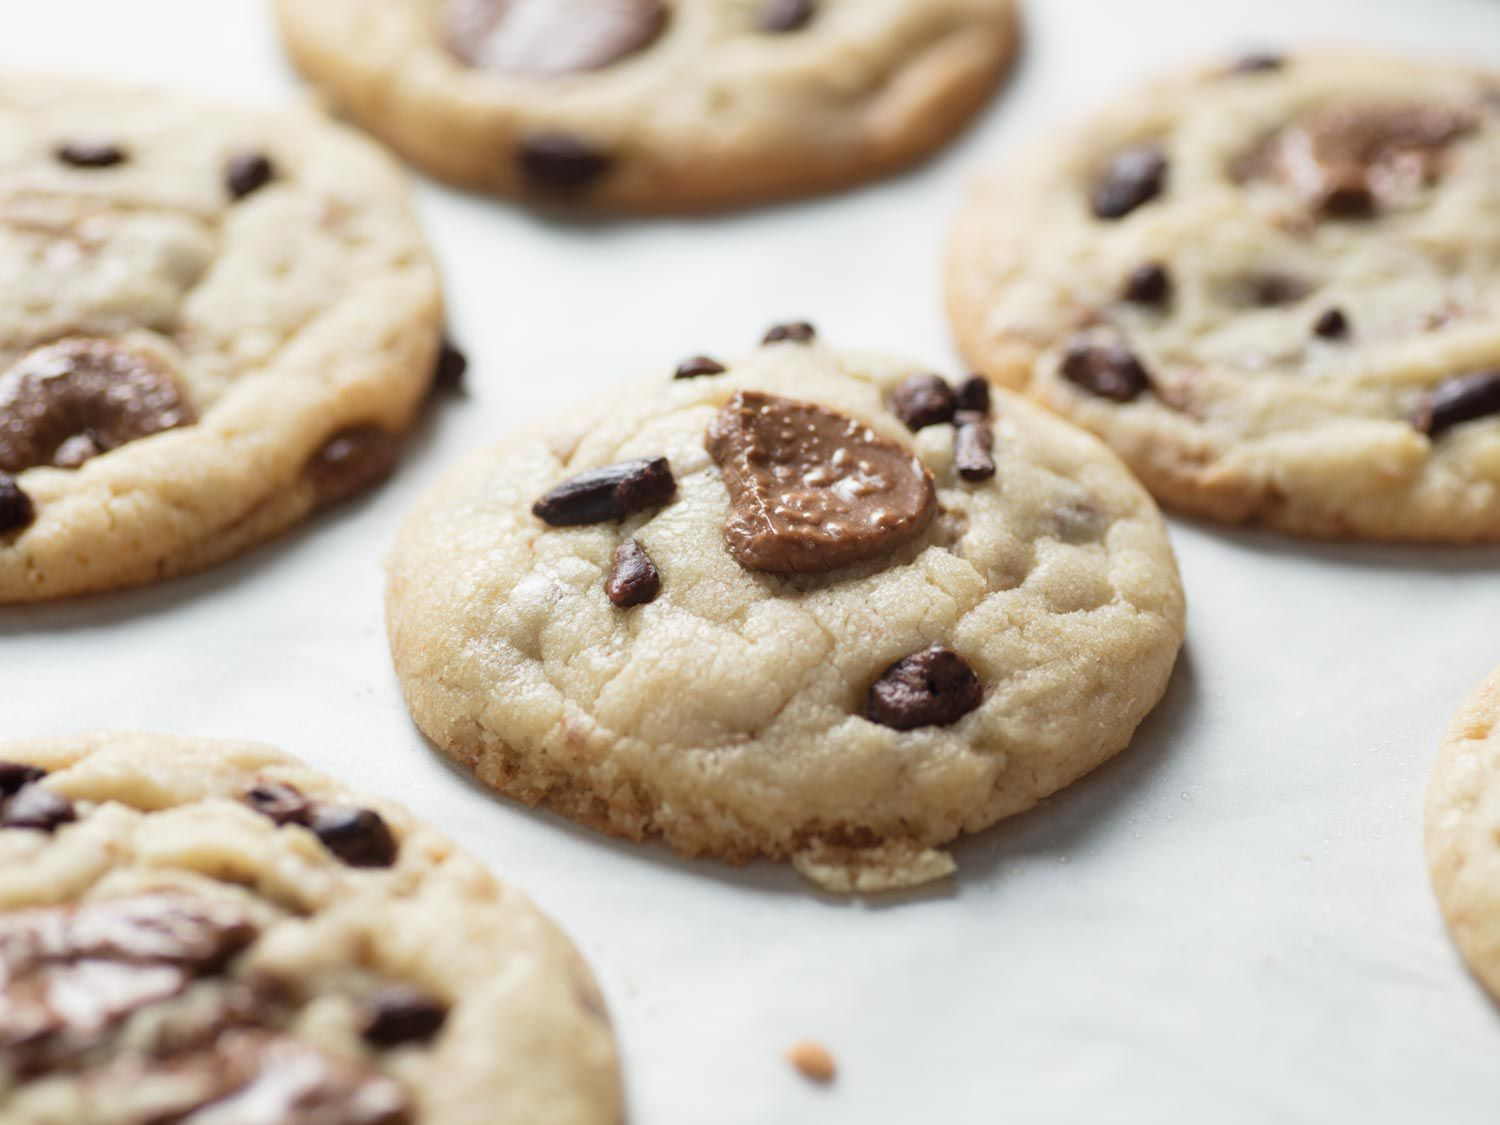 20170727-cocoa-butter-sugar-cookies-vicky-wasik-17.jpg